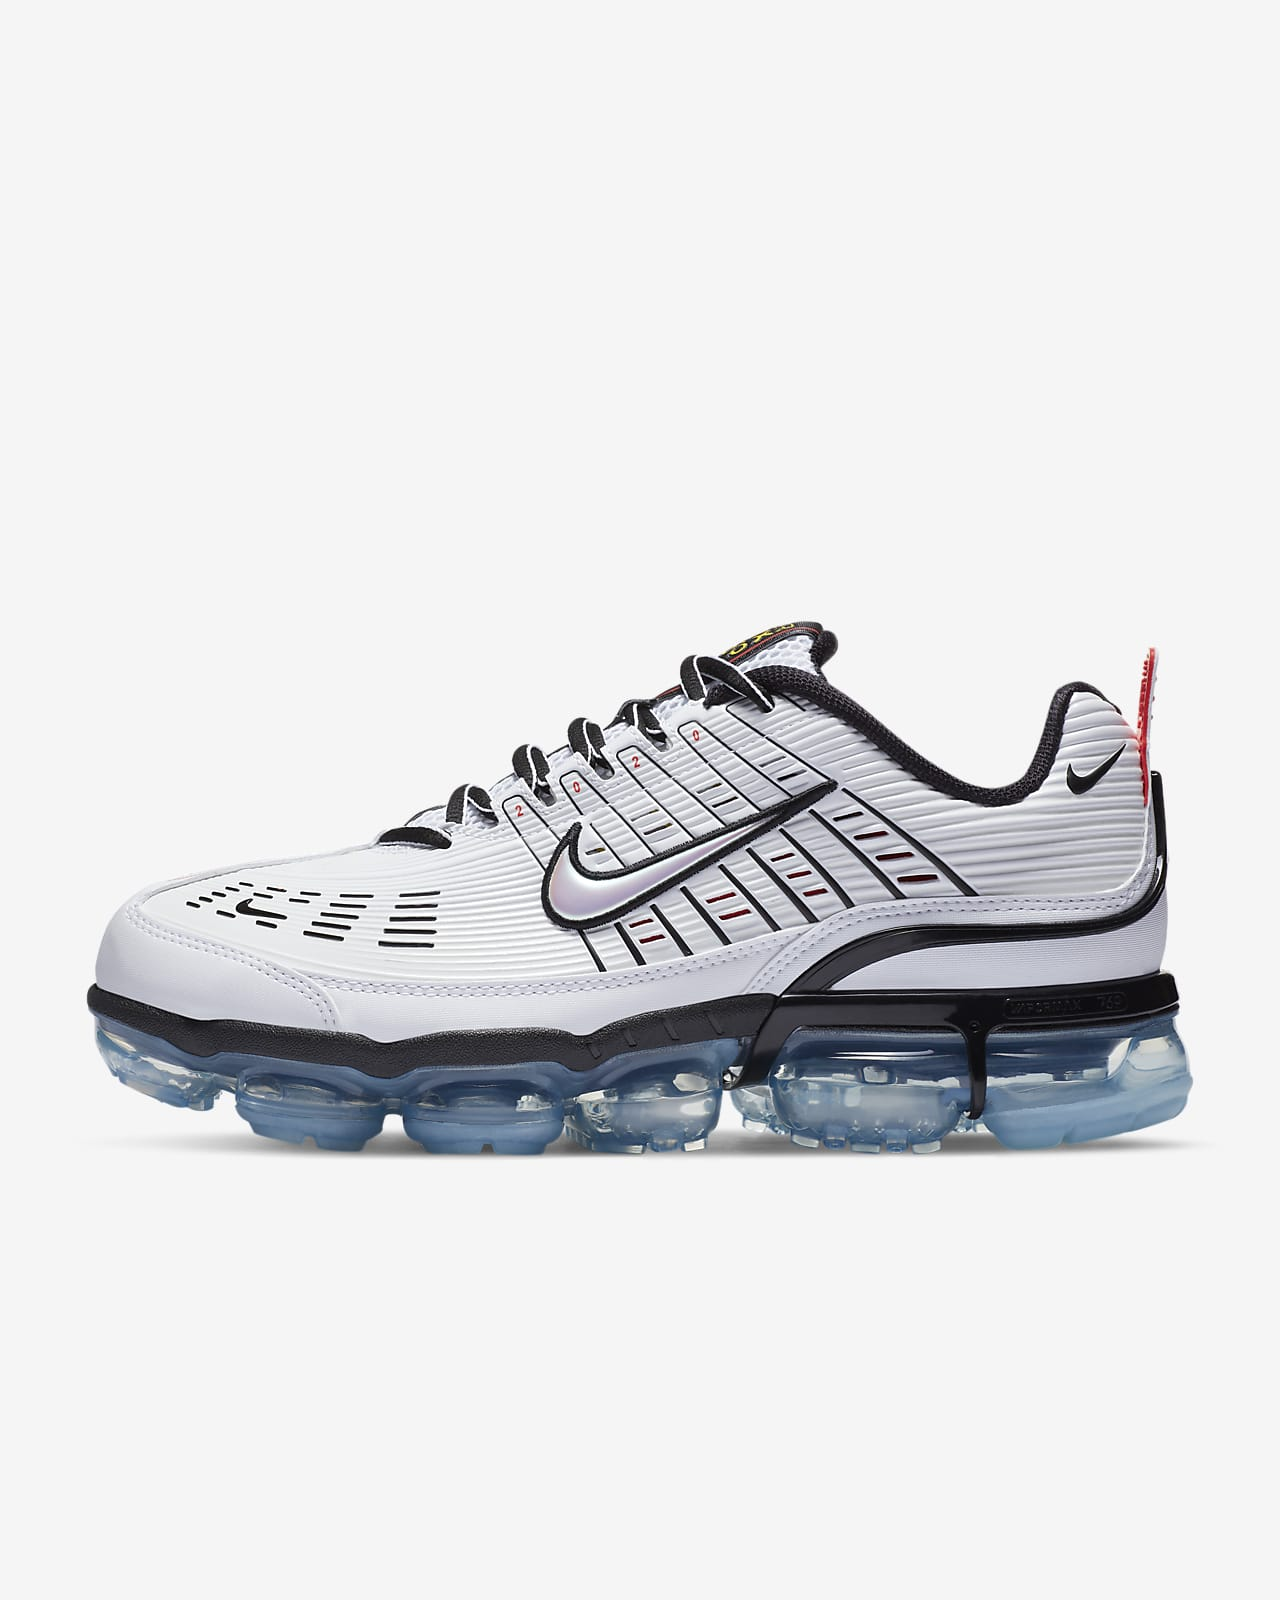 Nike Air Vapormax 360 Herrenschuh